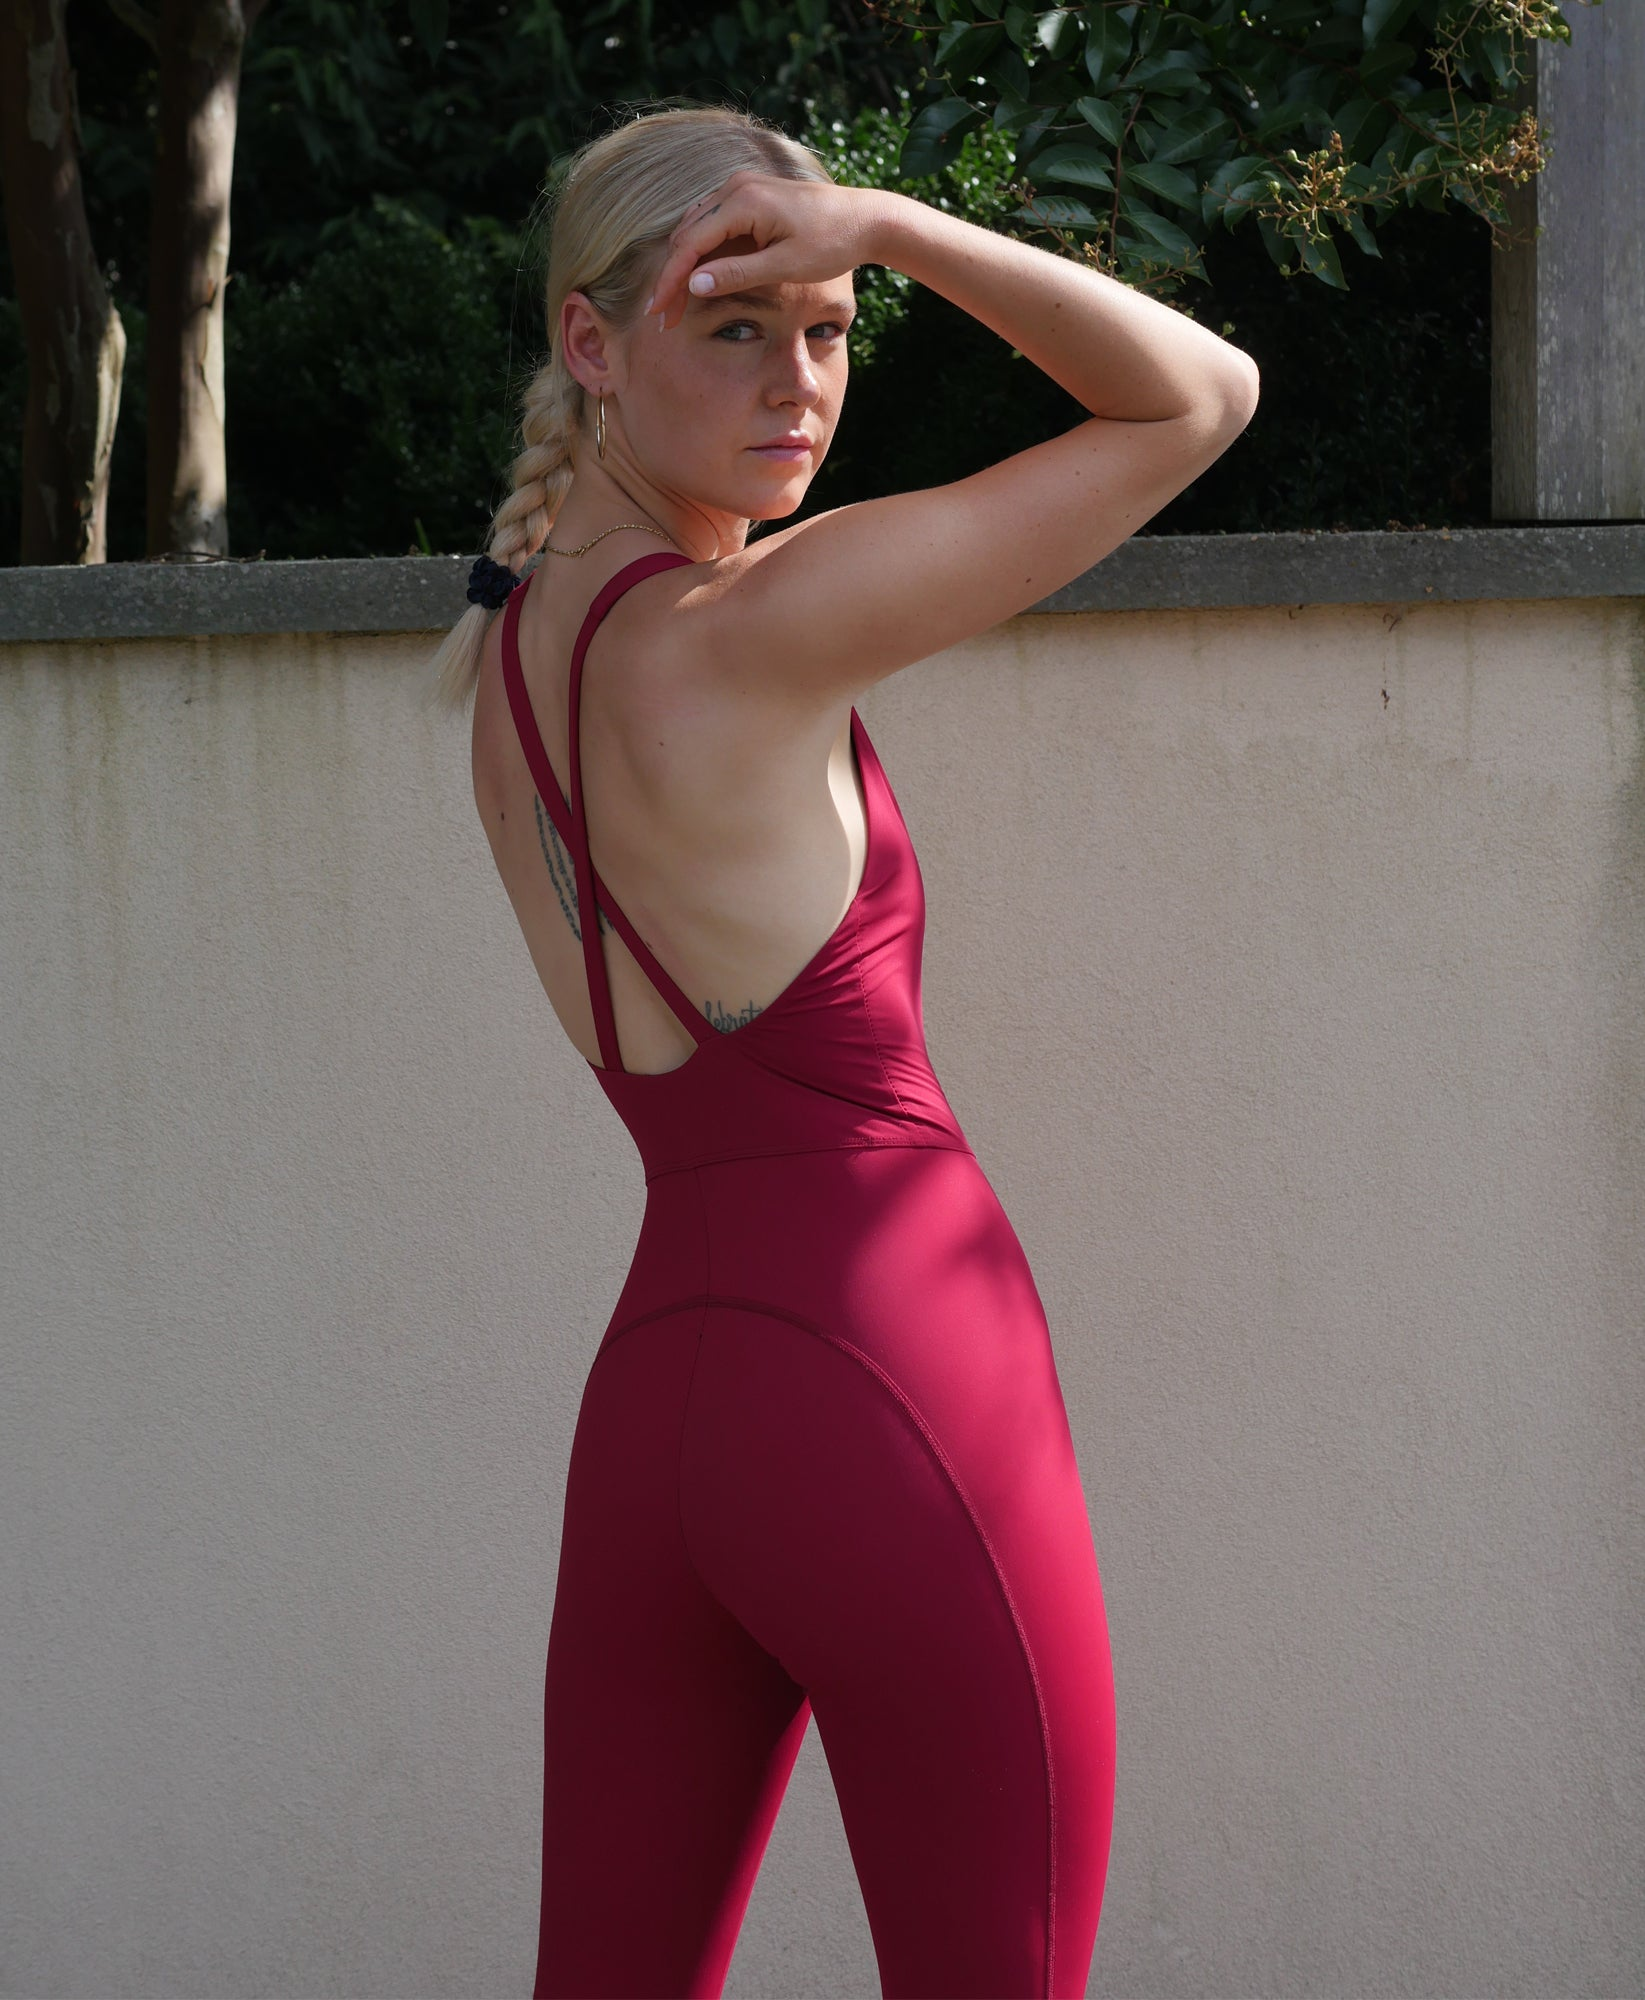 Wear One's At Liberty Unitard in Tango Red on Model Back Side View